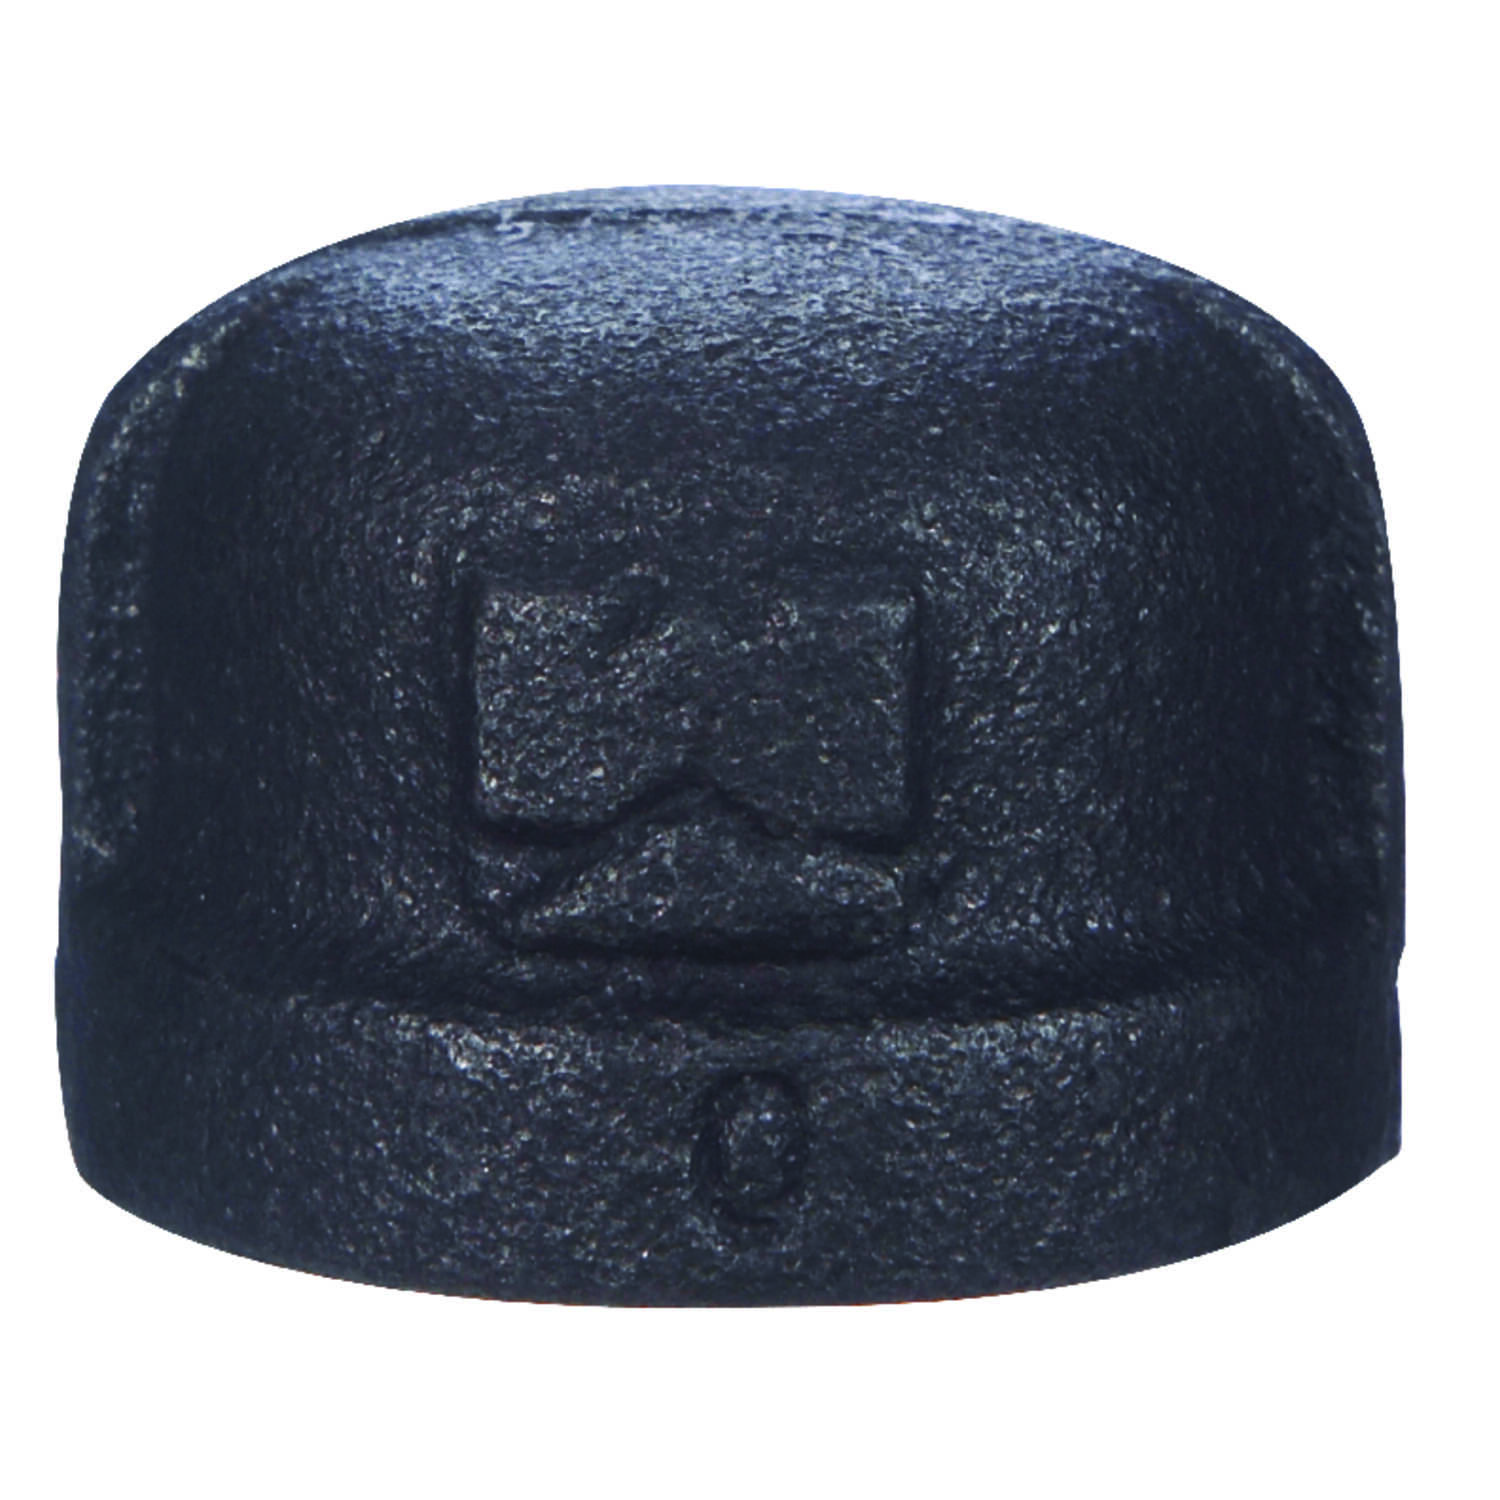 B & K  1-1/4 in. FPT   Black  Malleable Iron  Cap